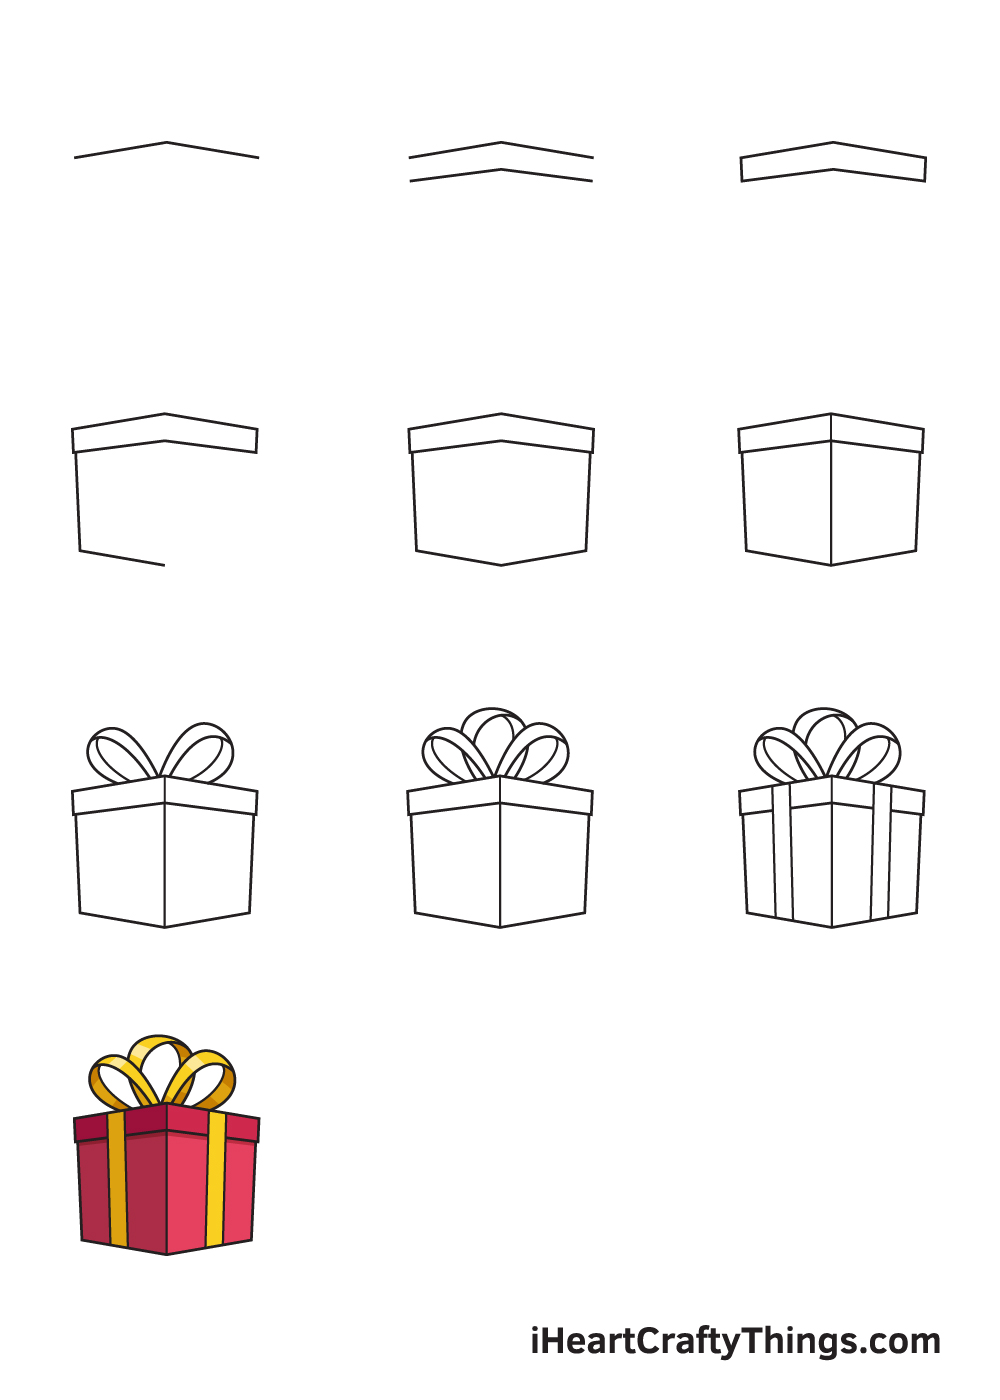 drawing present in 9 steps